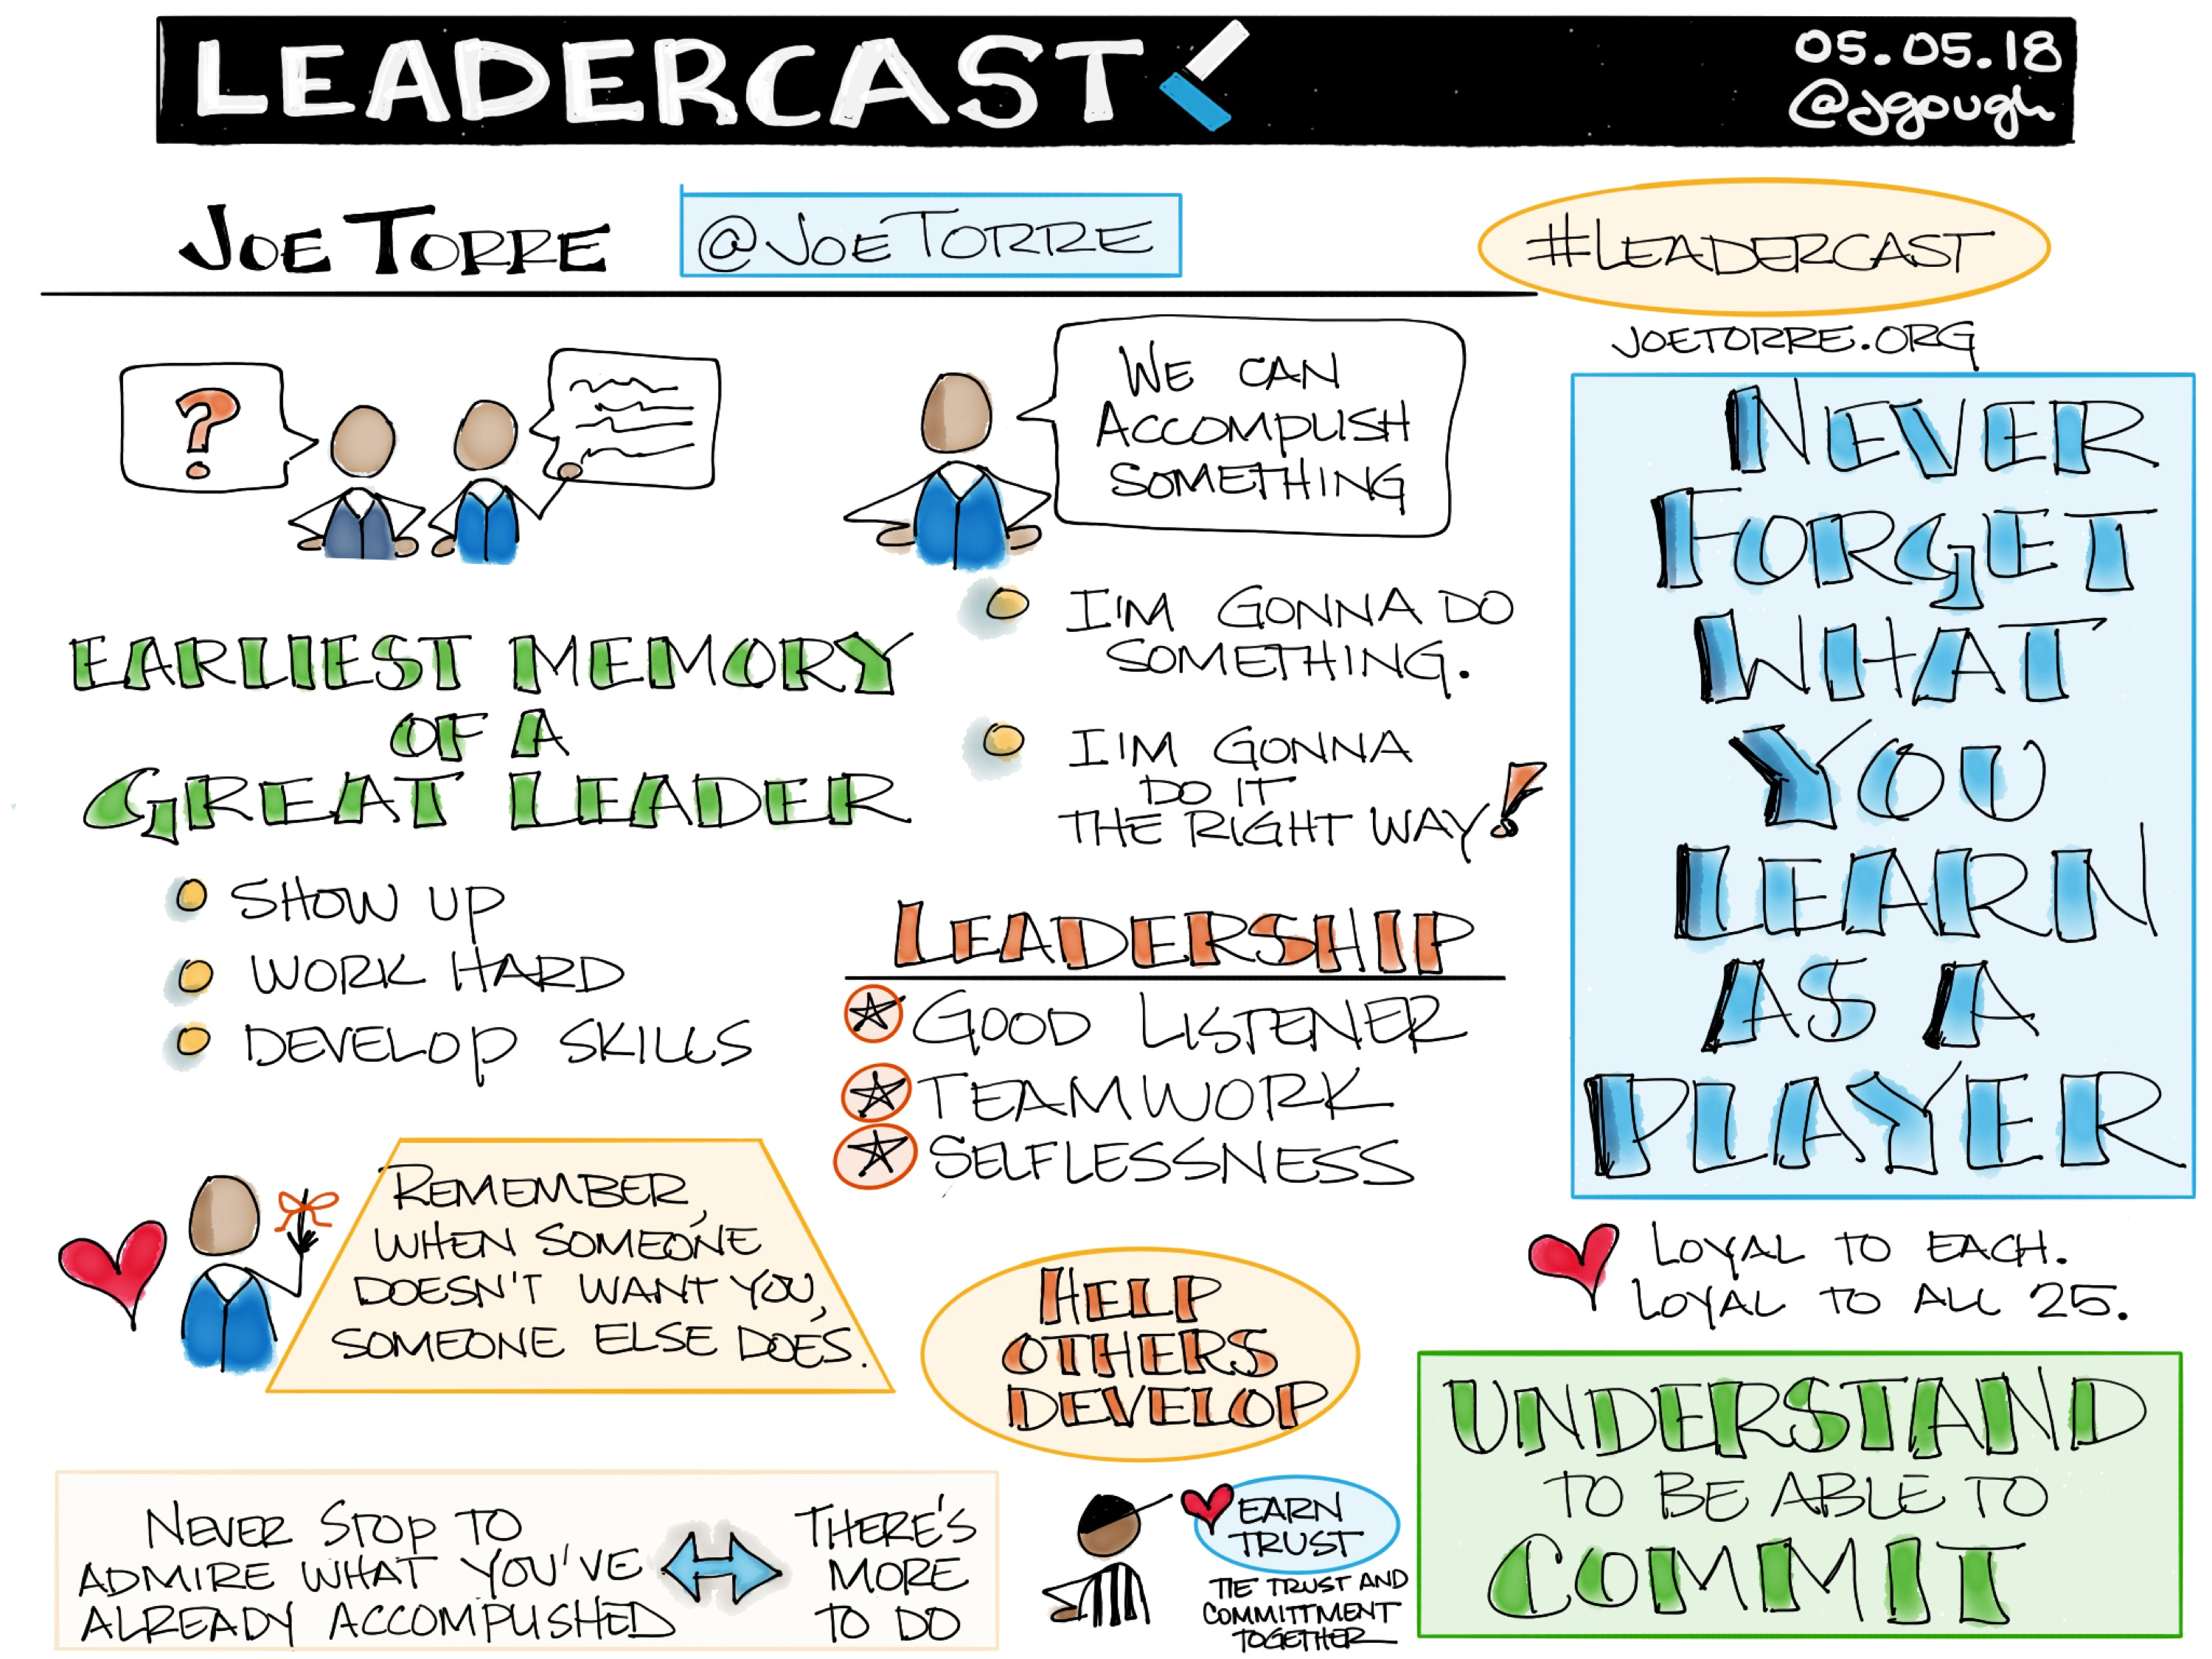 #Leadercast session with @JoeTorre: Leadership – help others develop: show up, work hard, develop skills